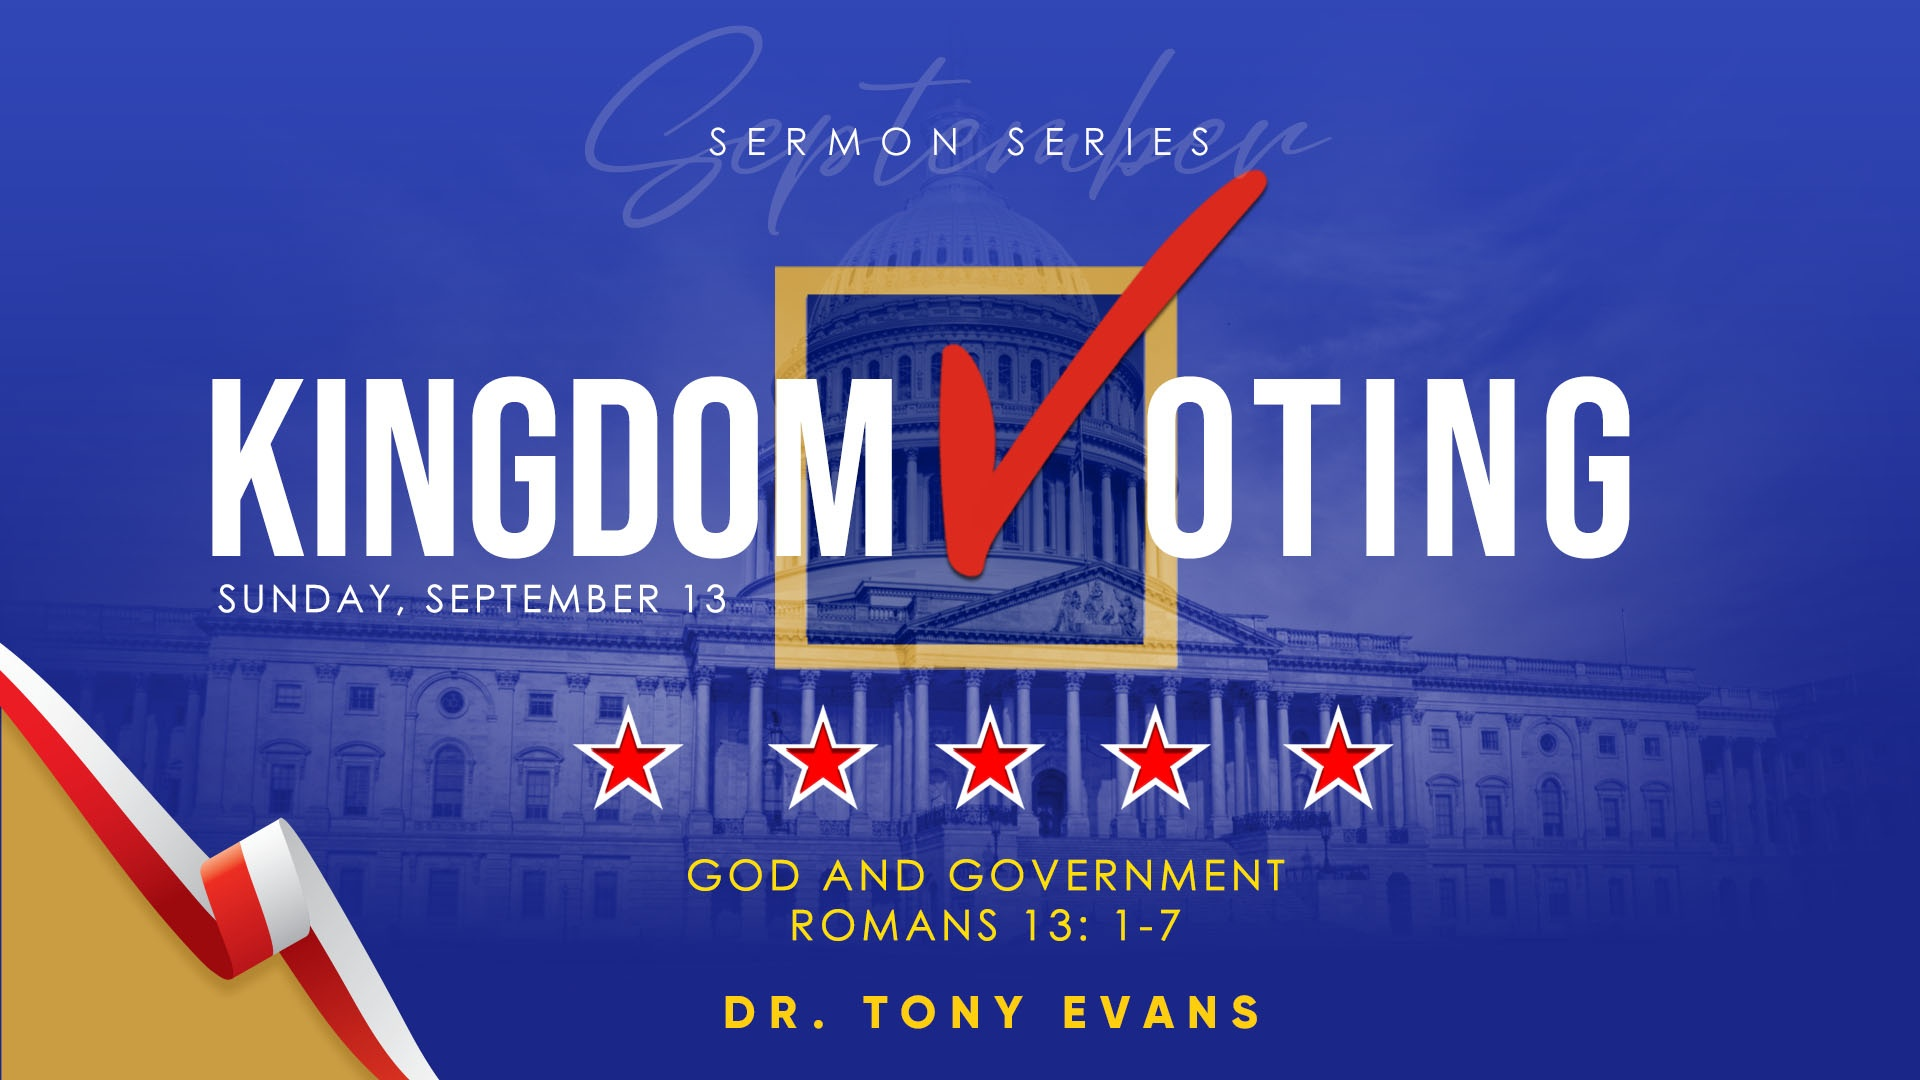 God and Government by Dr. Tony Evans - Kingdom Voting Series